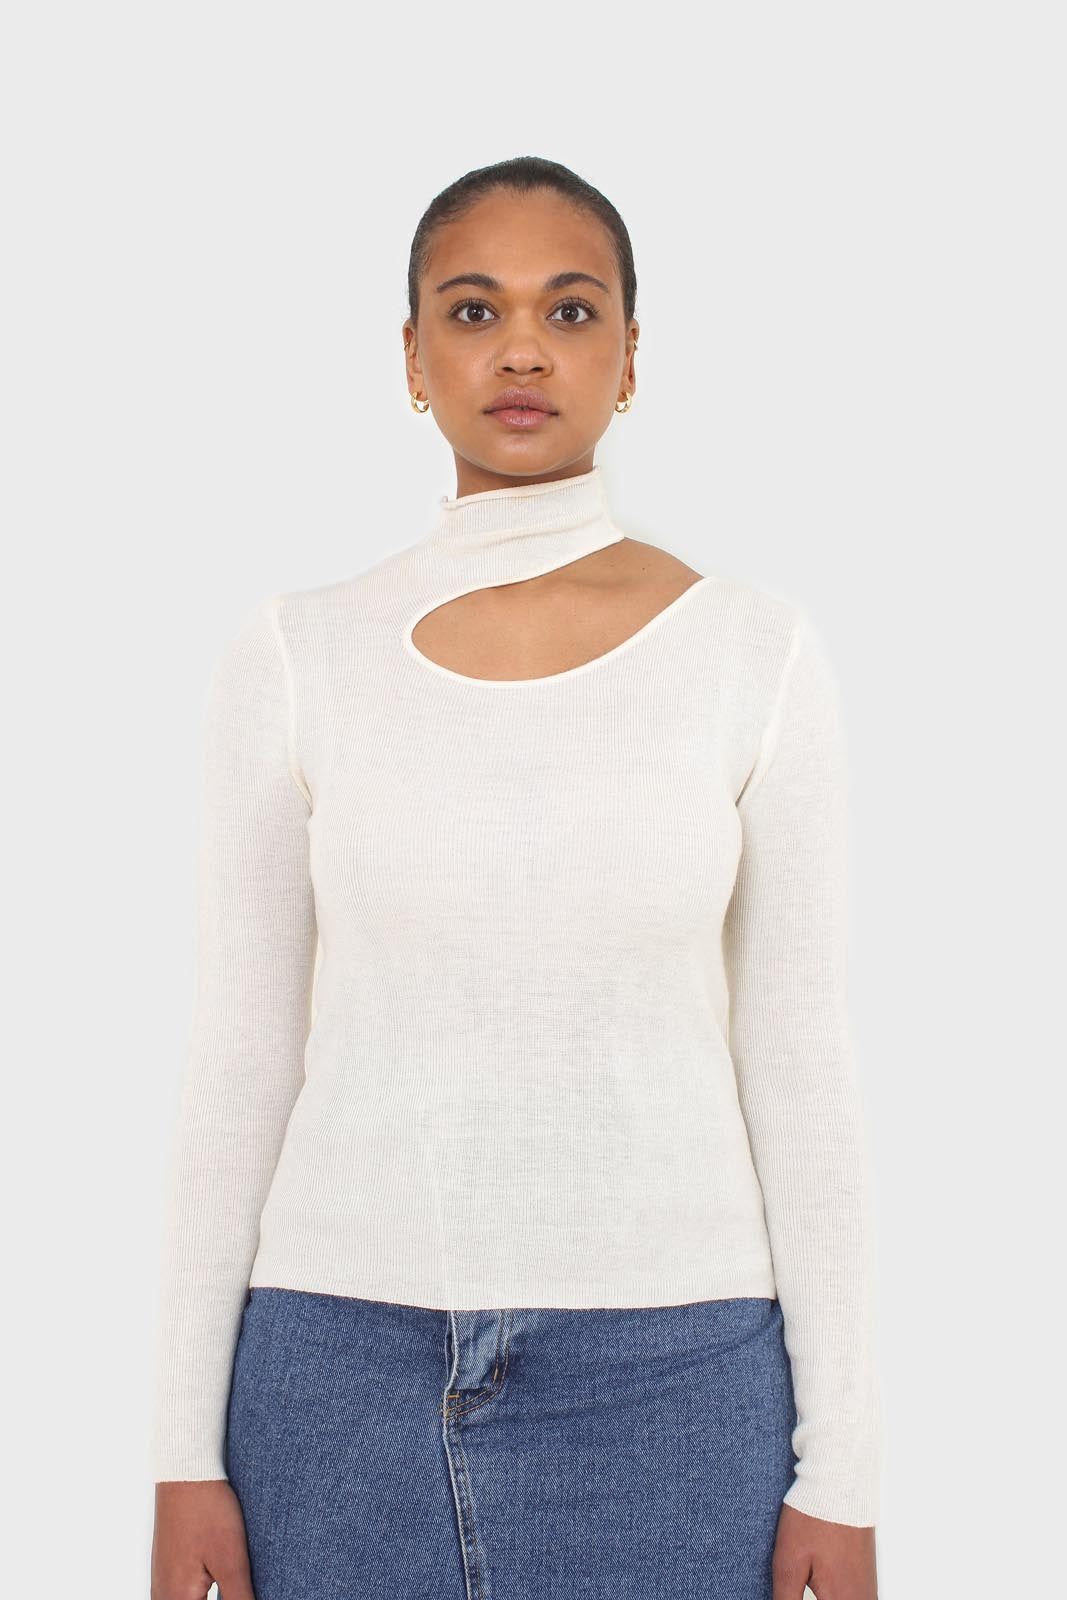 Ivory large cut out fitted knit turtleneck 4